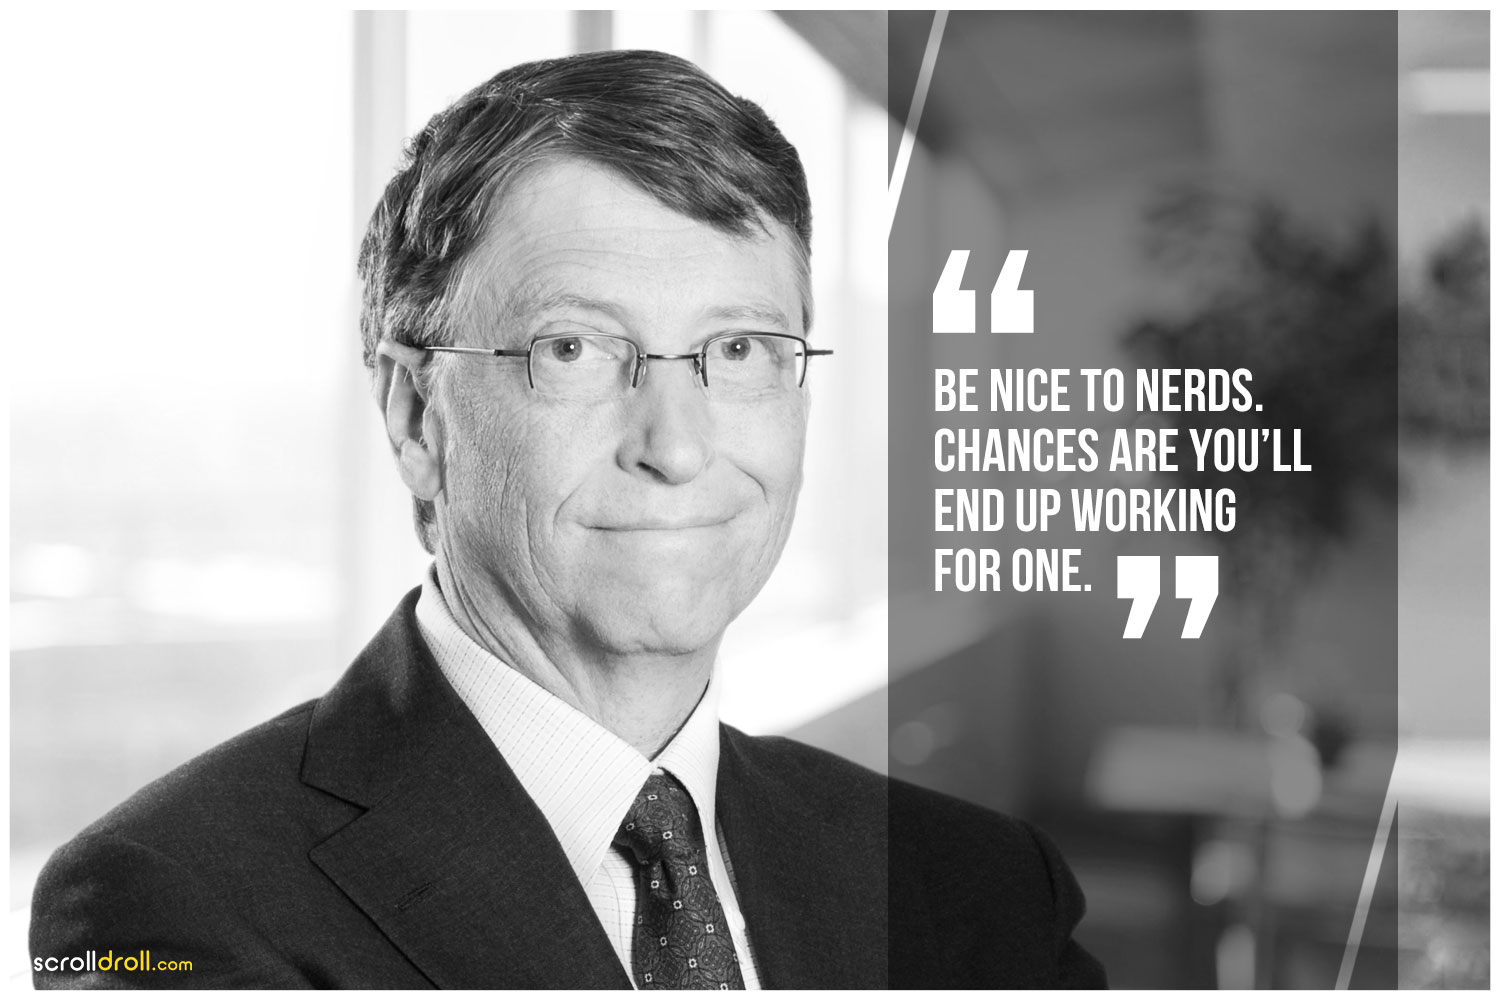 -Bill Gates- Be nice to nerds chances are you'll end up working for one.